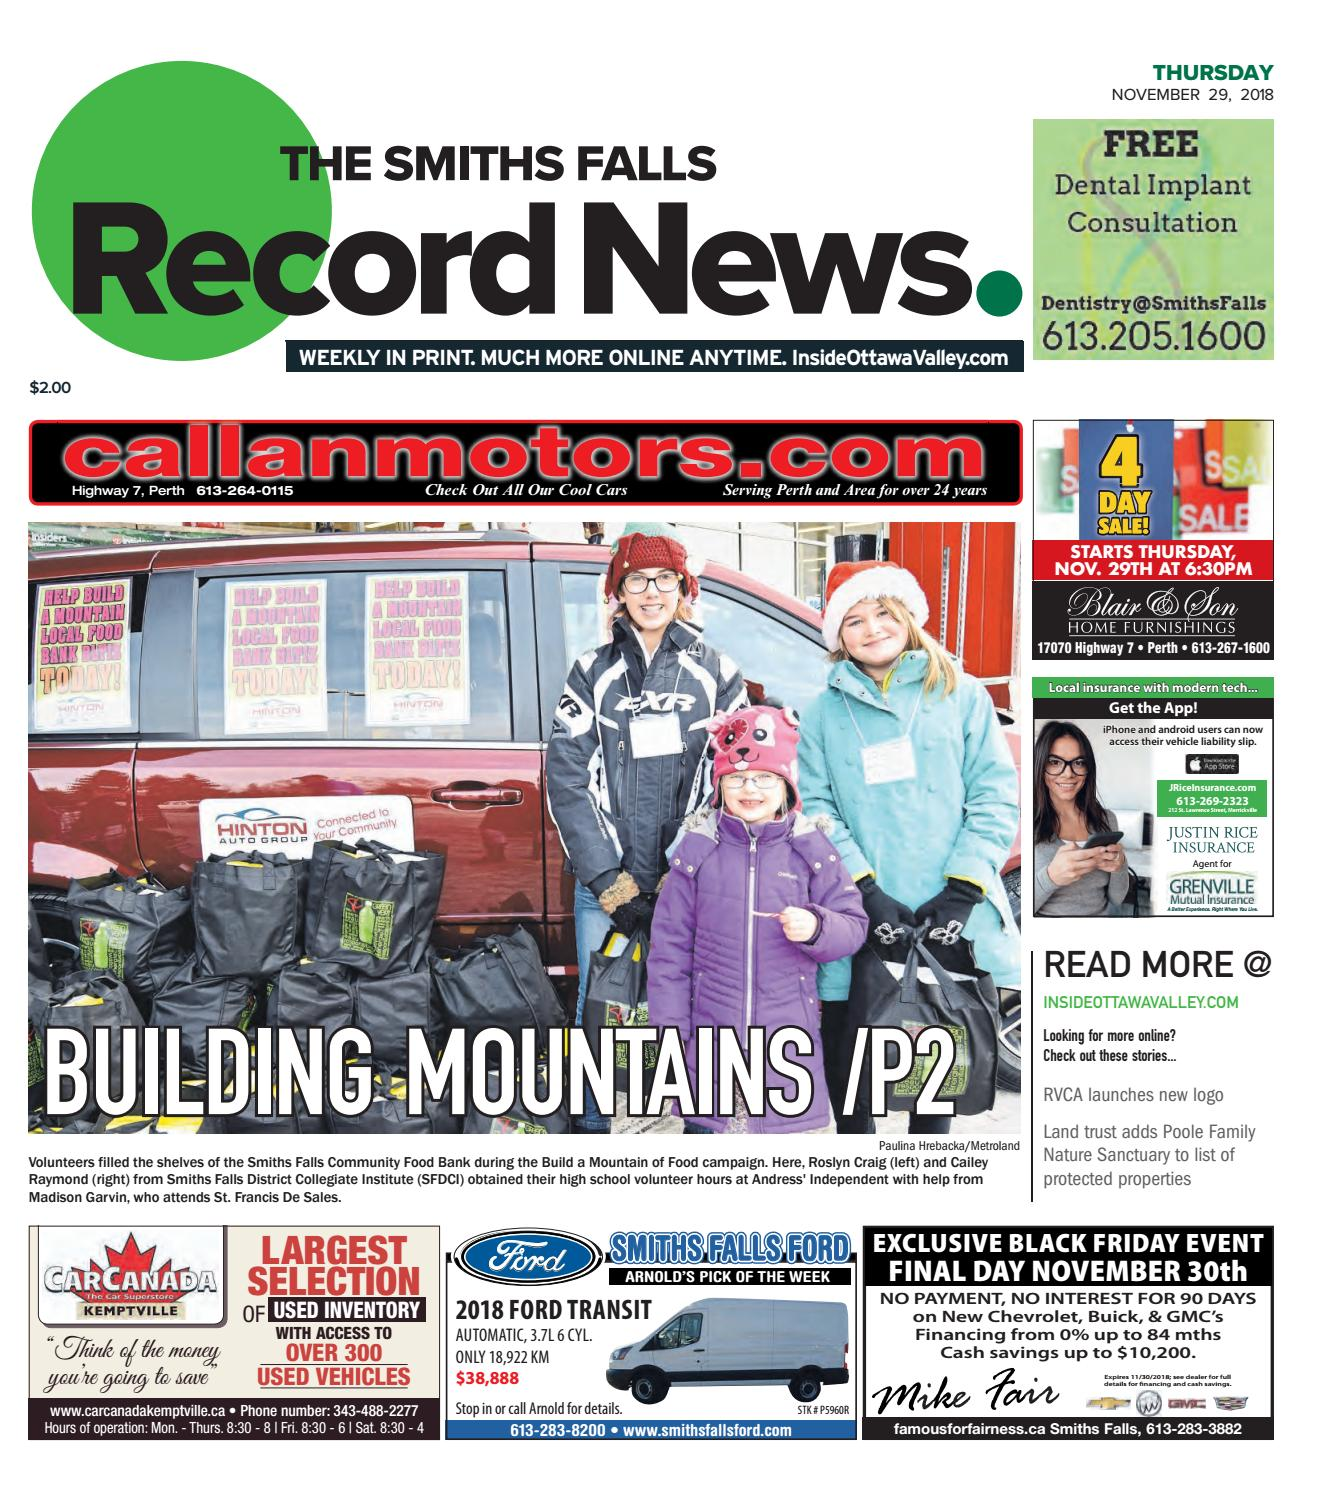 OTV S A 20181129 by Metroland East - Smiths Falls Record News - issuu c3ea9afd33d01